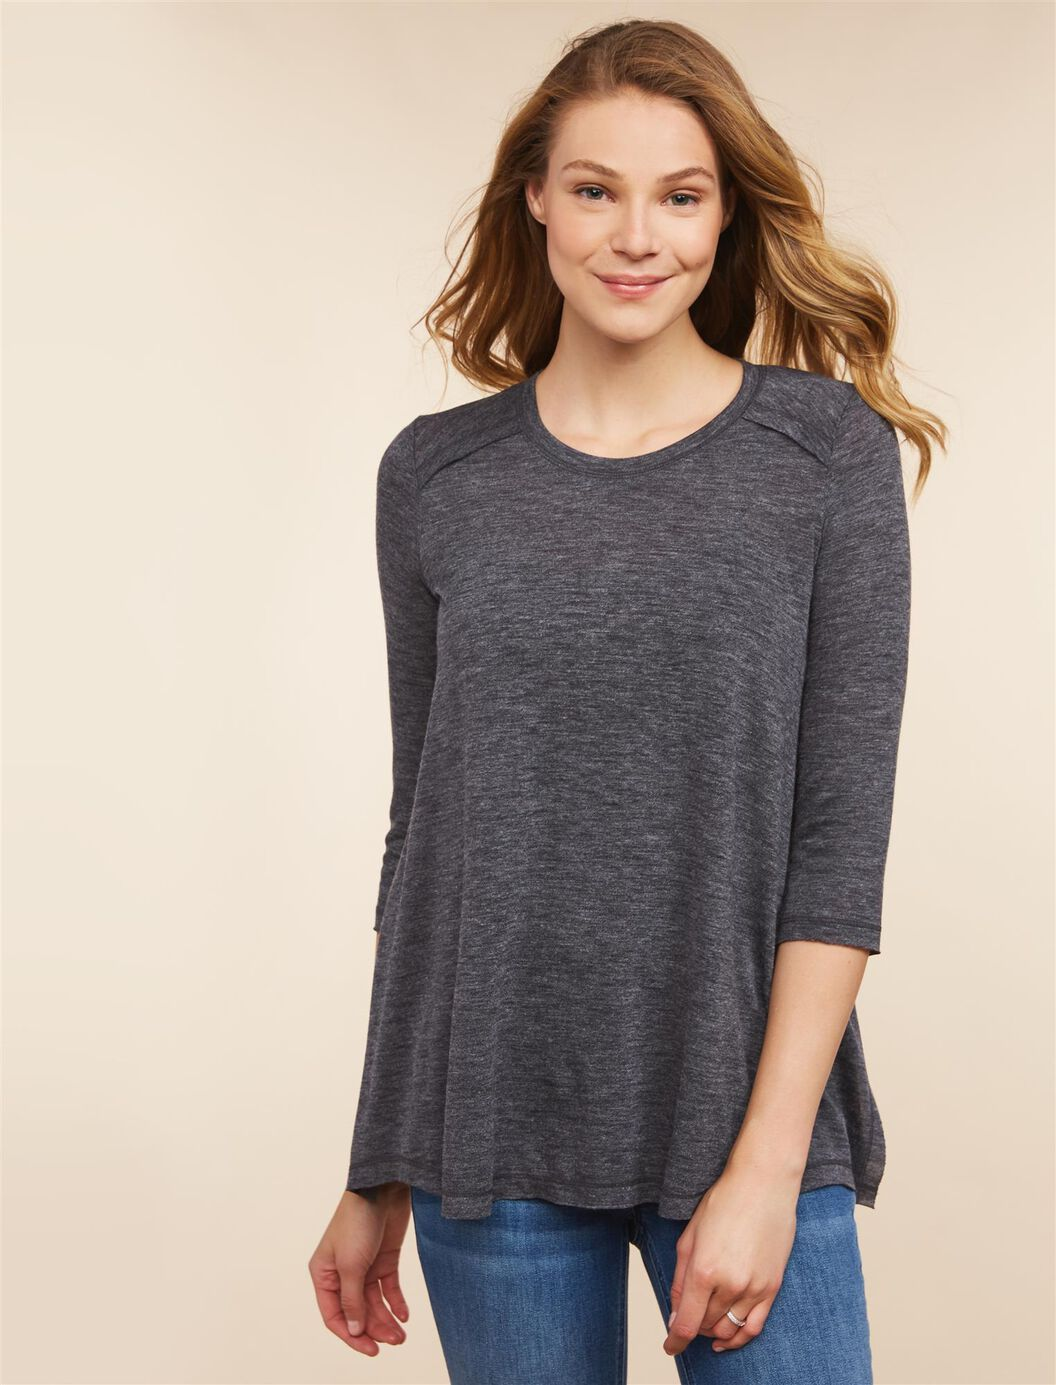 Jessica Simpson Pull Over Side Slit Nursing Top at Motherhood Maternity in Victor, NY | Tuggl